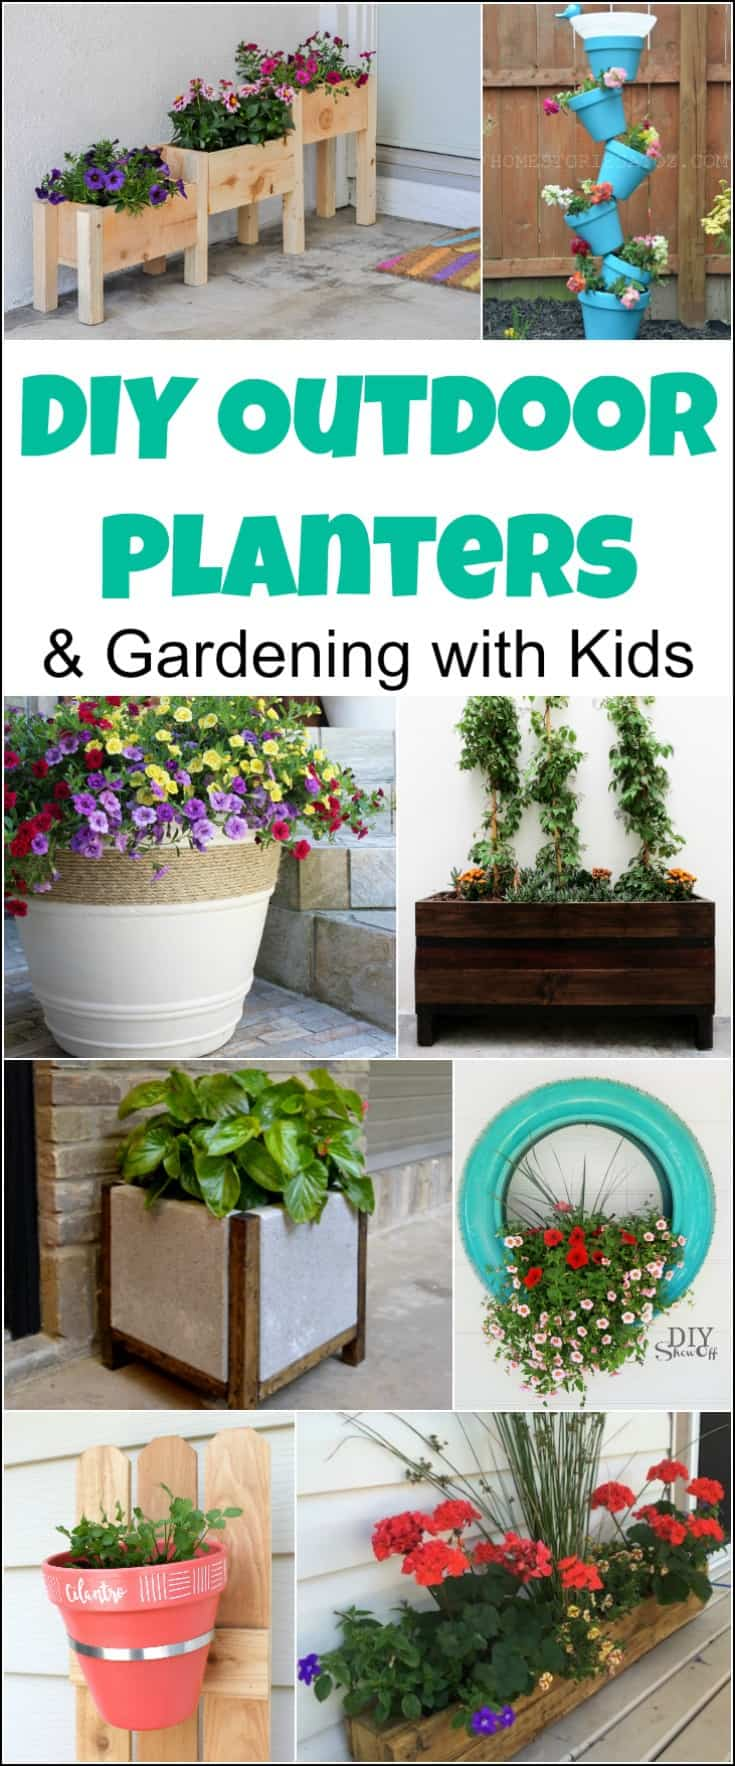 ... Decorative Garden Containers Gardening With Kids U0026 20 Diy Outdoor  Planters By Just The Woods ...